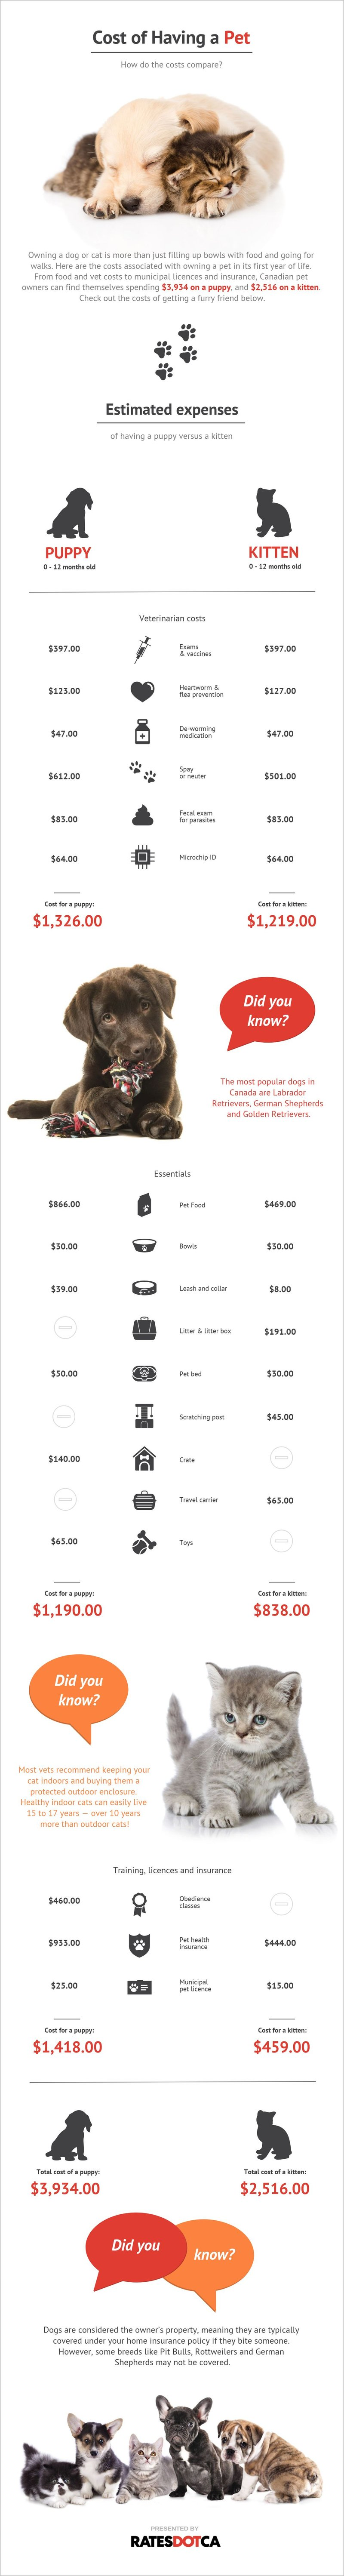 Cost of a Pet in Canada Infographic